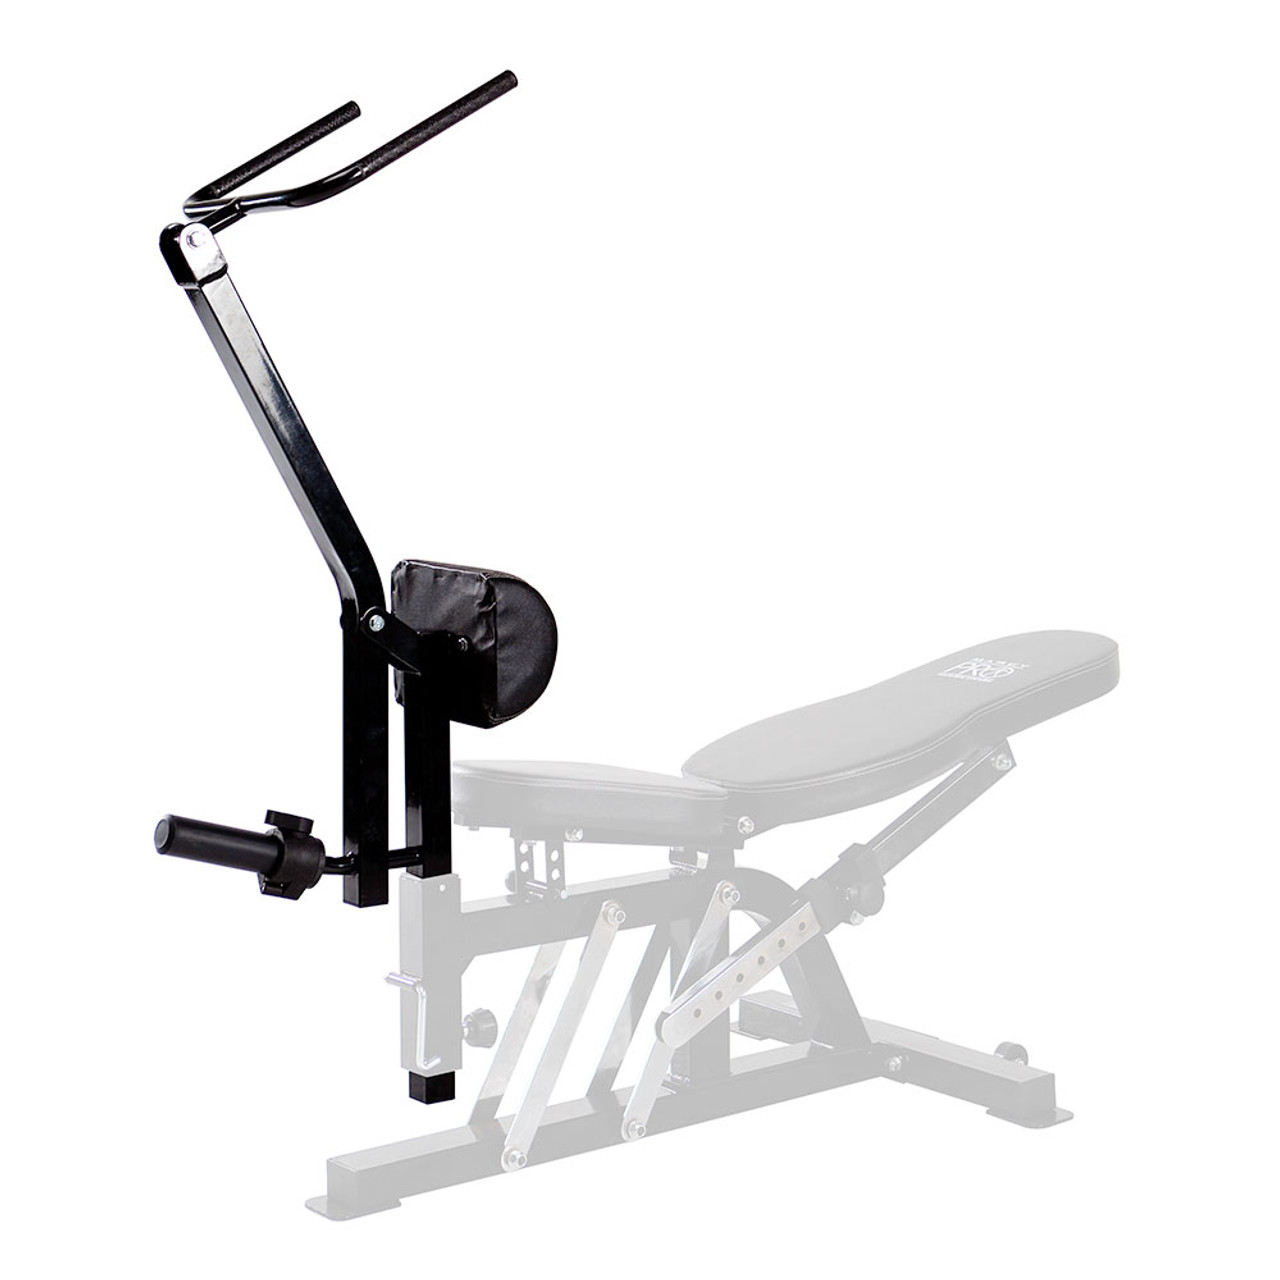 various for pro benches exercise see at marcypro com pm marcy more ab model accessory bench